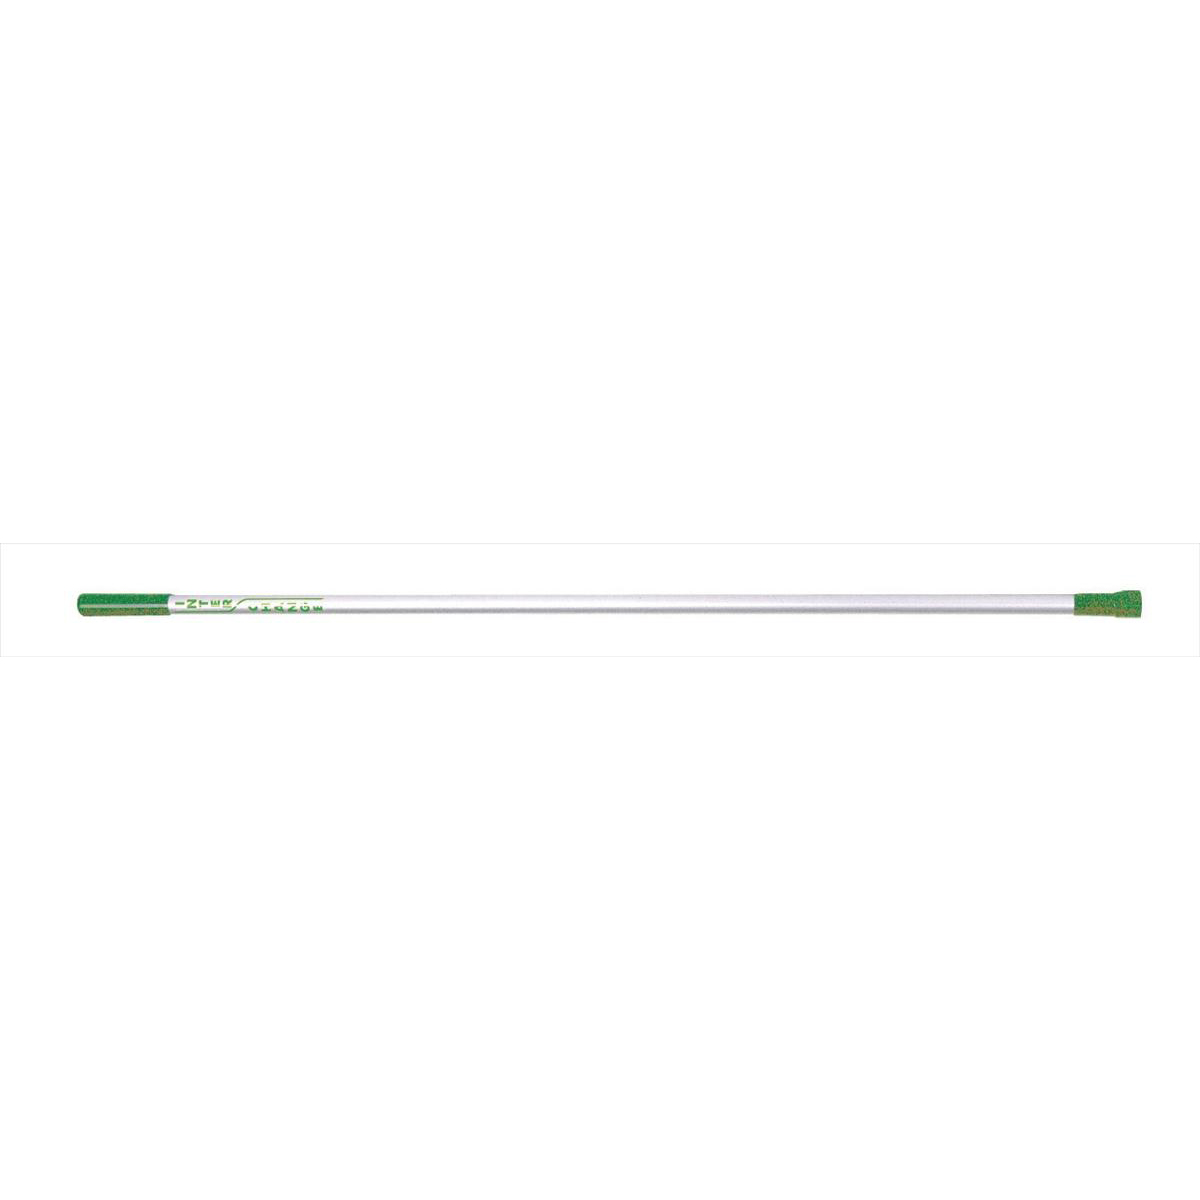 Mops & Buckets Scott Young Research Interchange Aluminium Mop Handle Green Ref MHACG